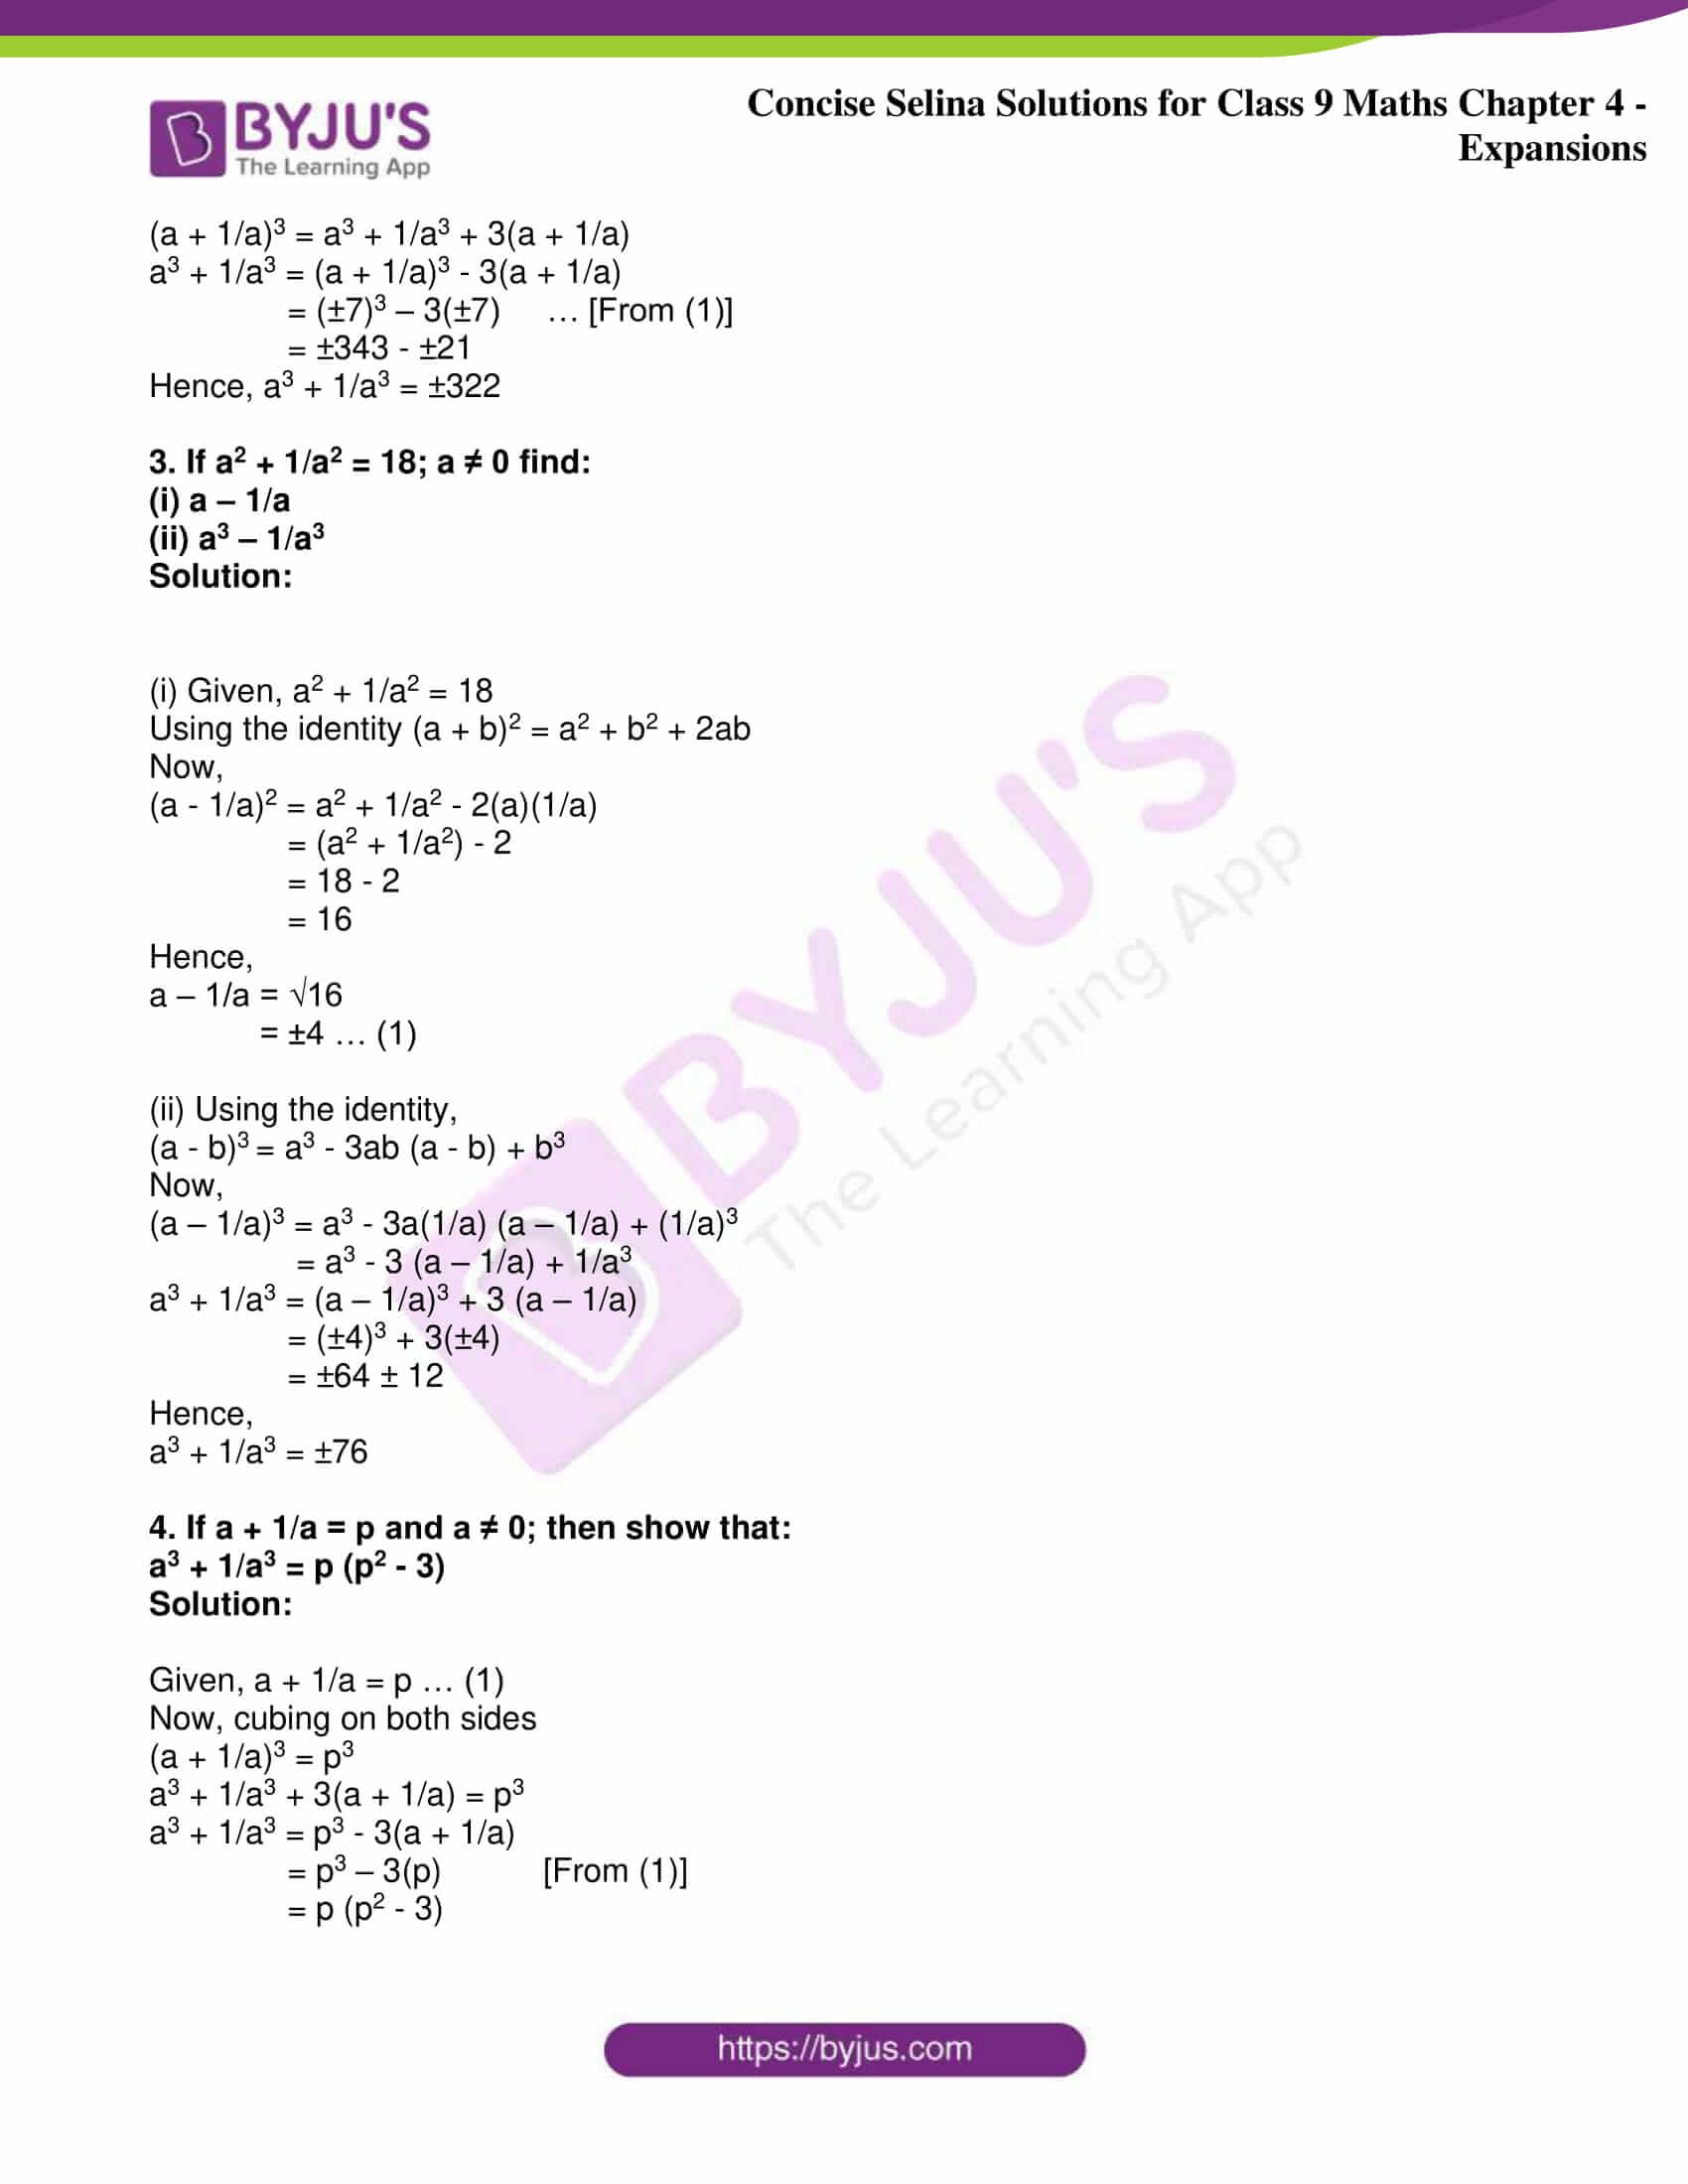 icse class 9 maths may10 selina solutions chapter 4 expansions 11